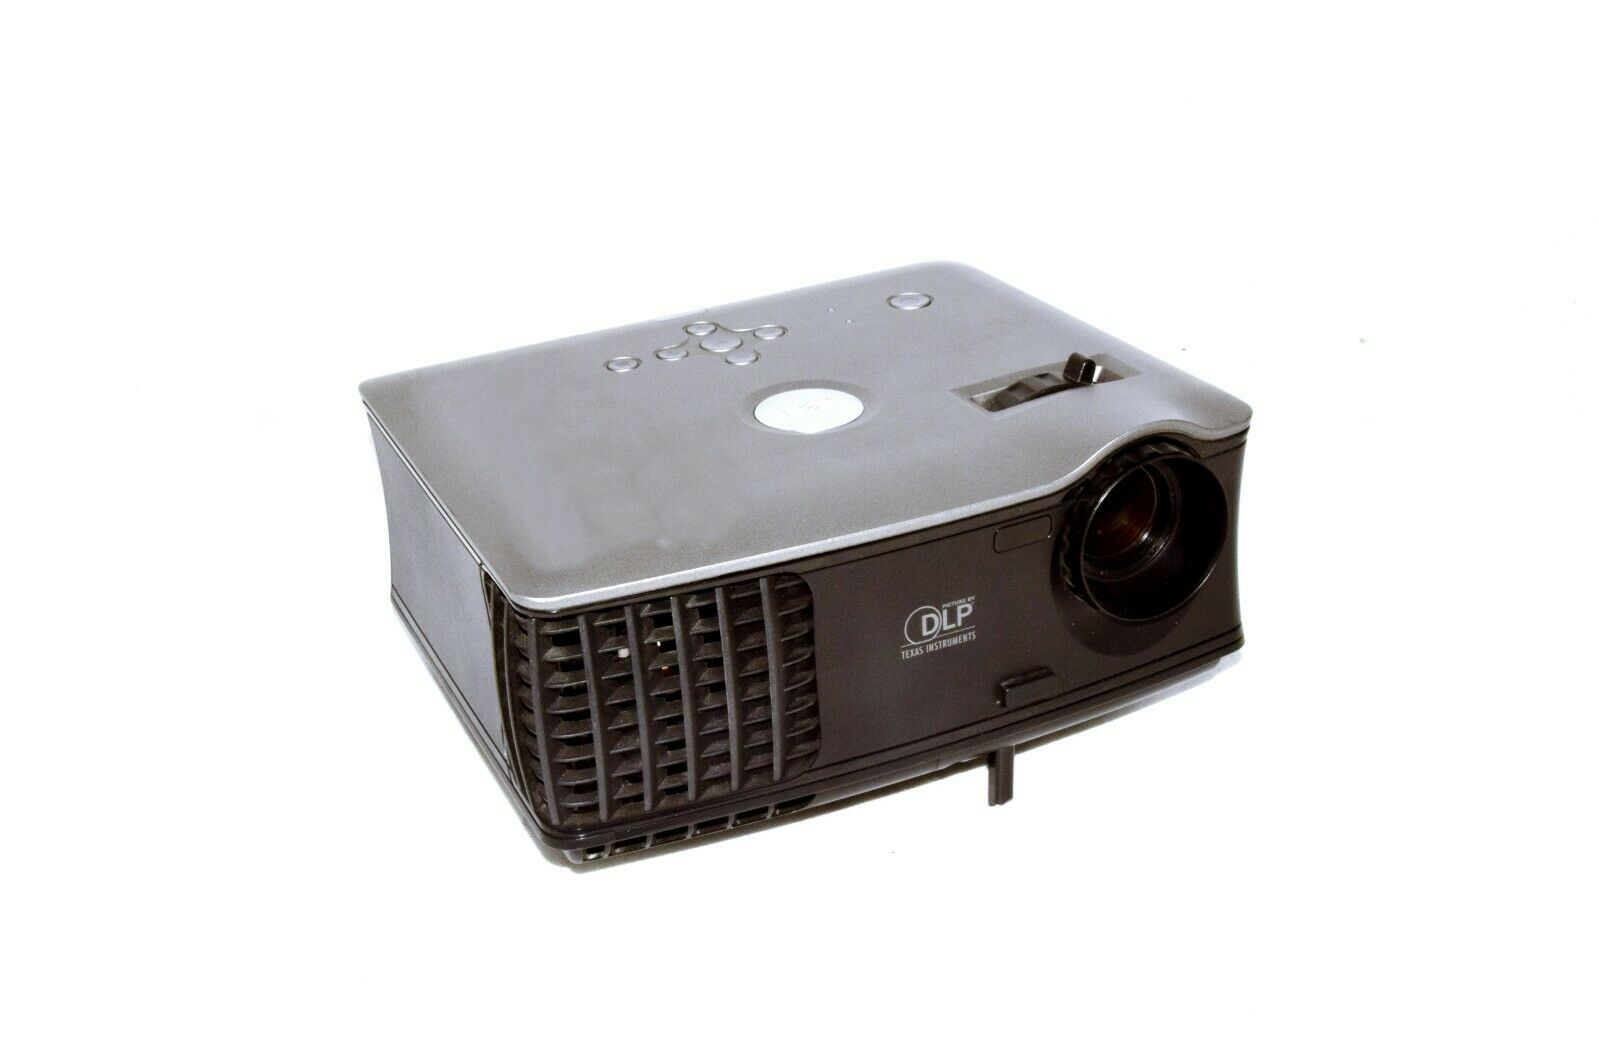 Dell 1800MP DLP Front Projector Beamer